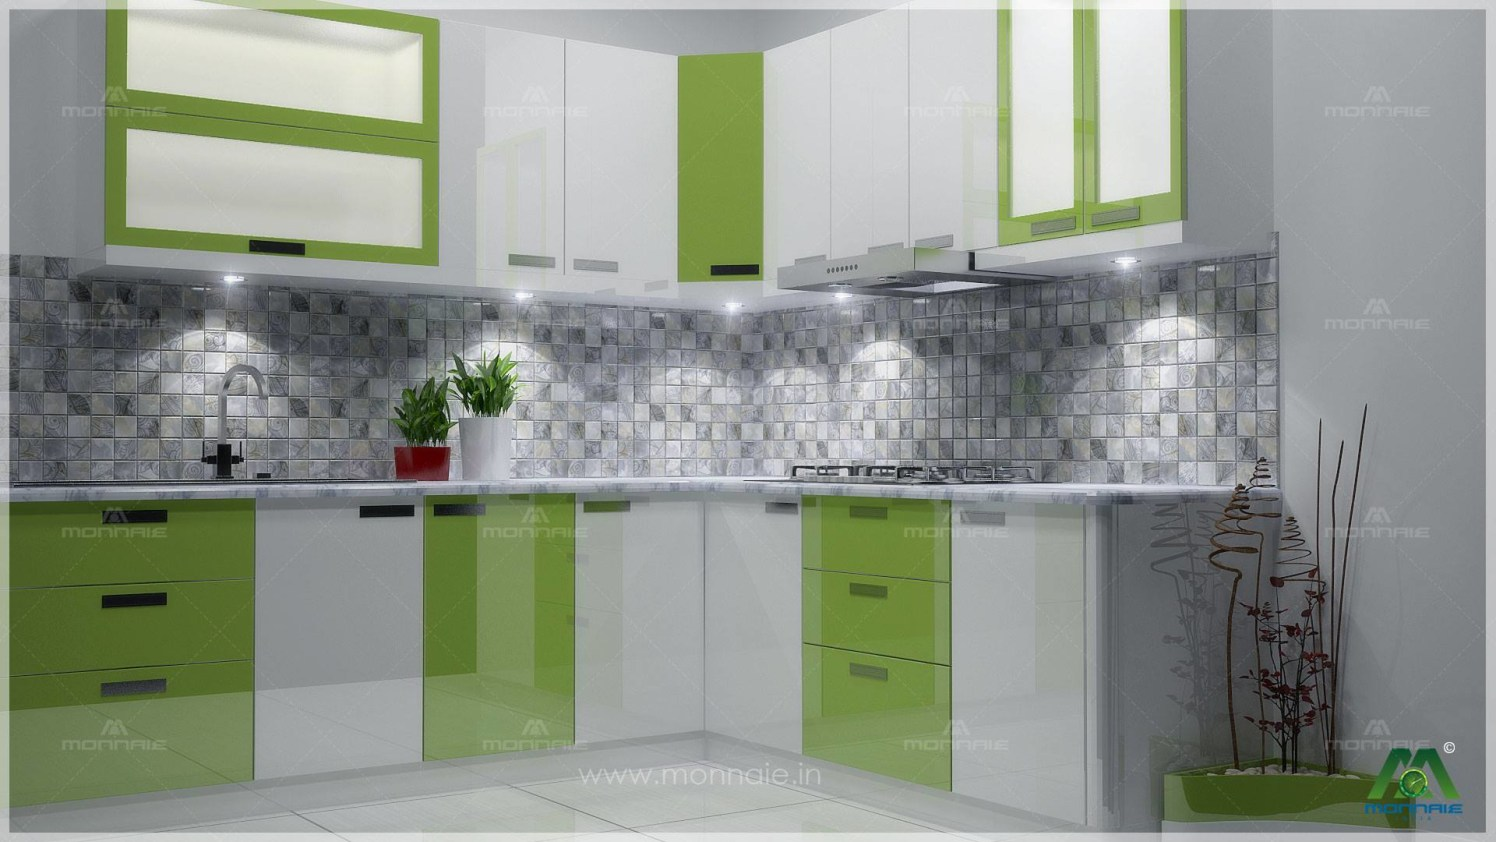 Green And White Shaded Modular L Shaped Kitchen by Monnaie Architects Modular-kitchen Contemporary | Interior Design Photos & Ideas